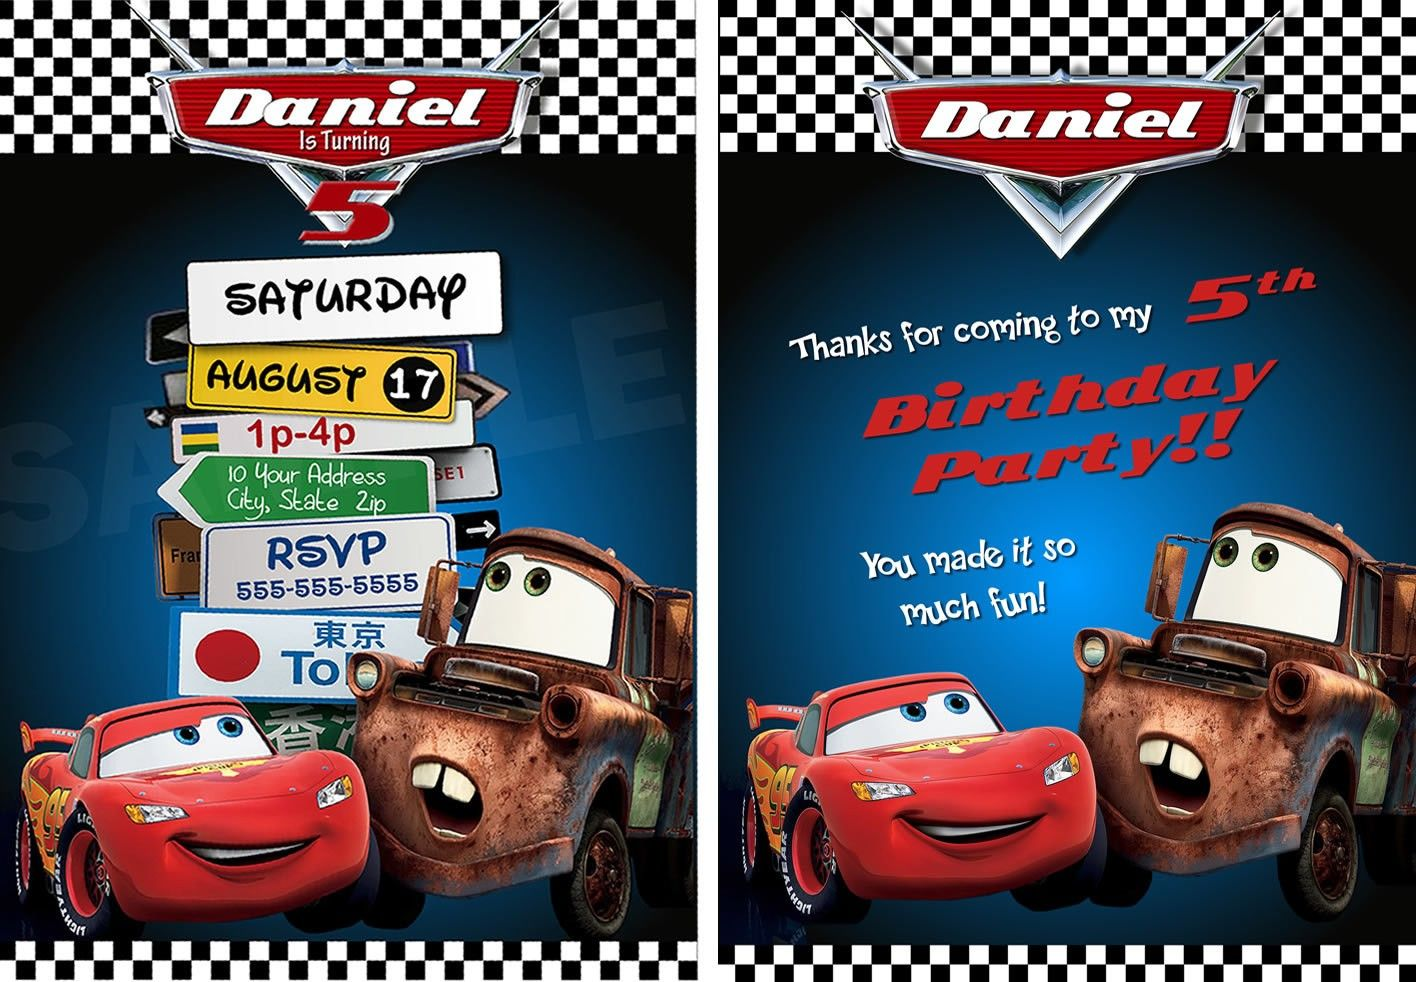 picture regarding Disney Cars Birthday Invitations Printable Free referred to as Autos 2 Invites Printable Absolutely free Bubbys 3rd bday Disney